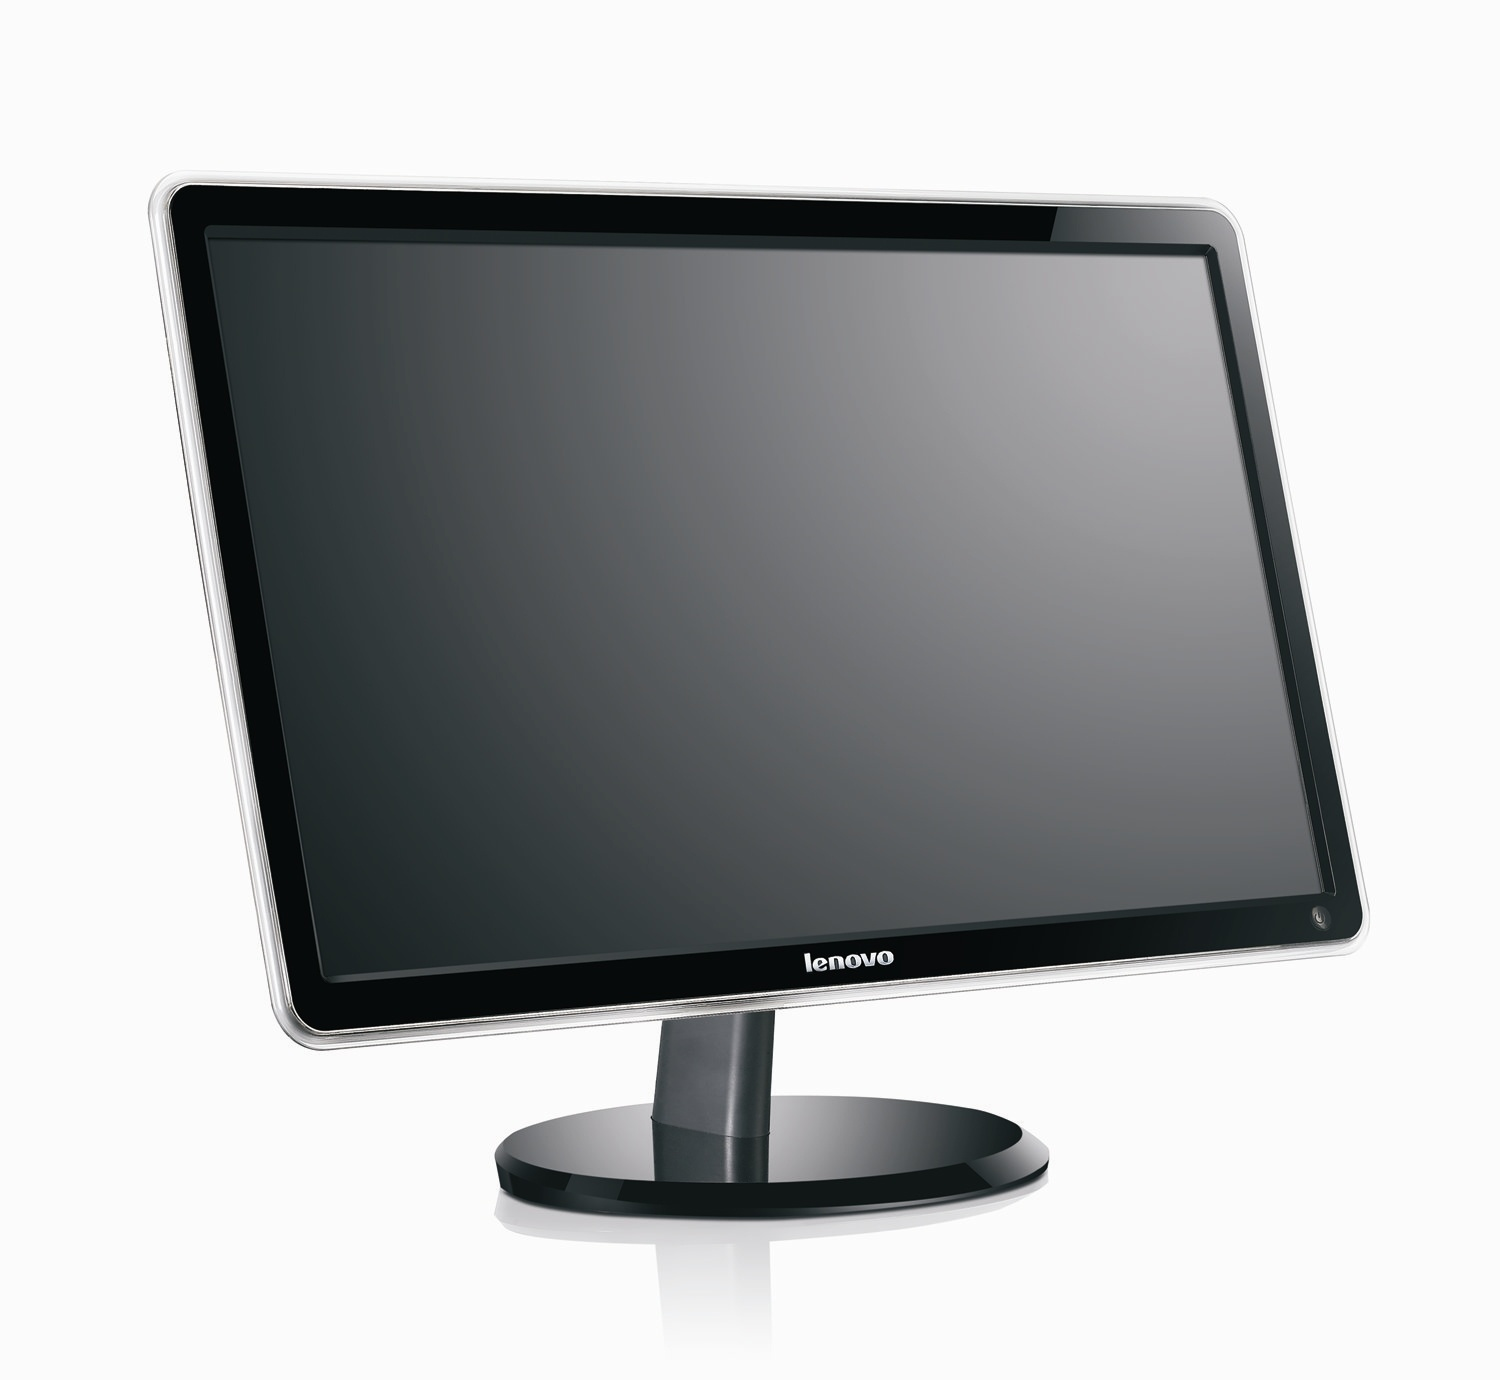 Lenovo LS series monitors